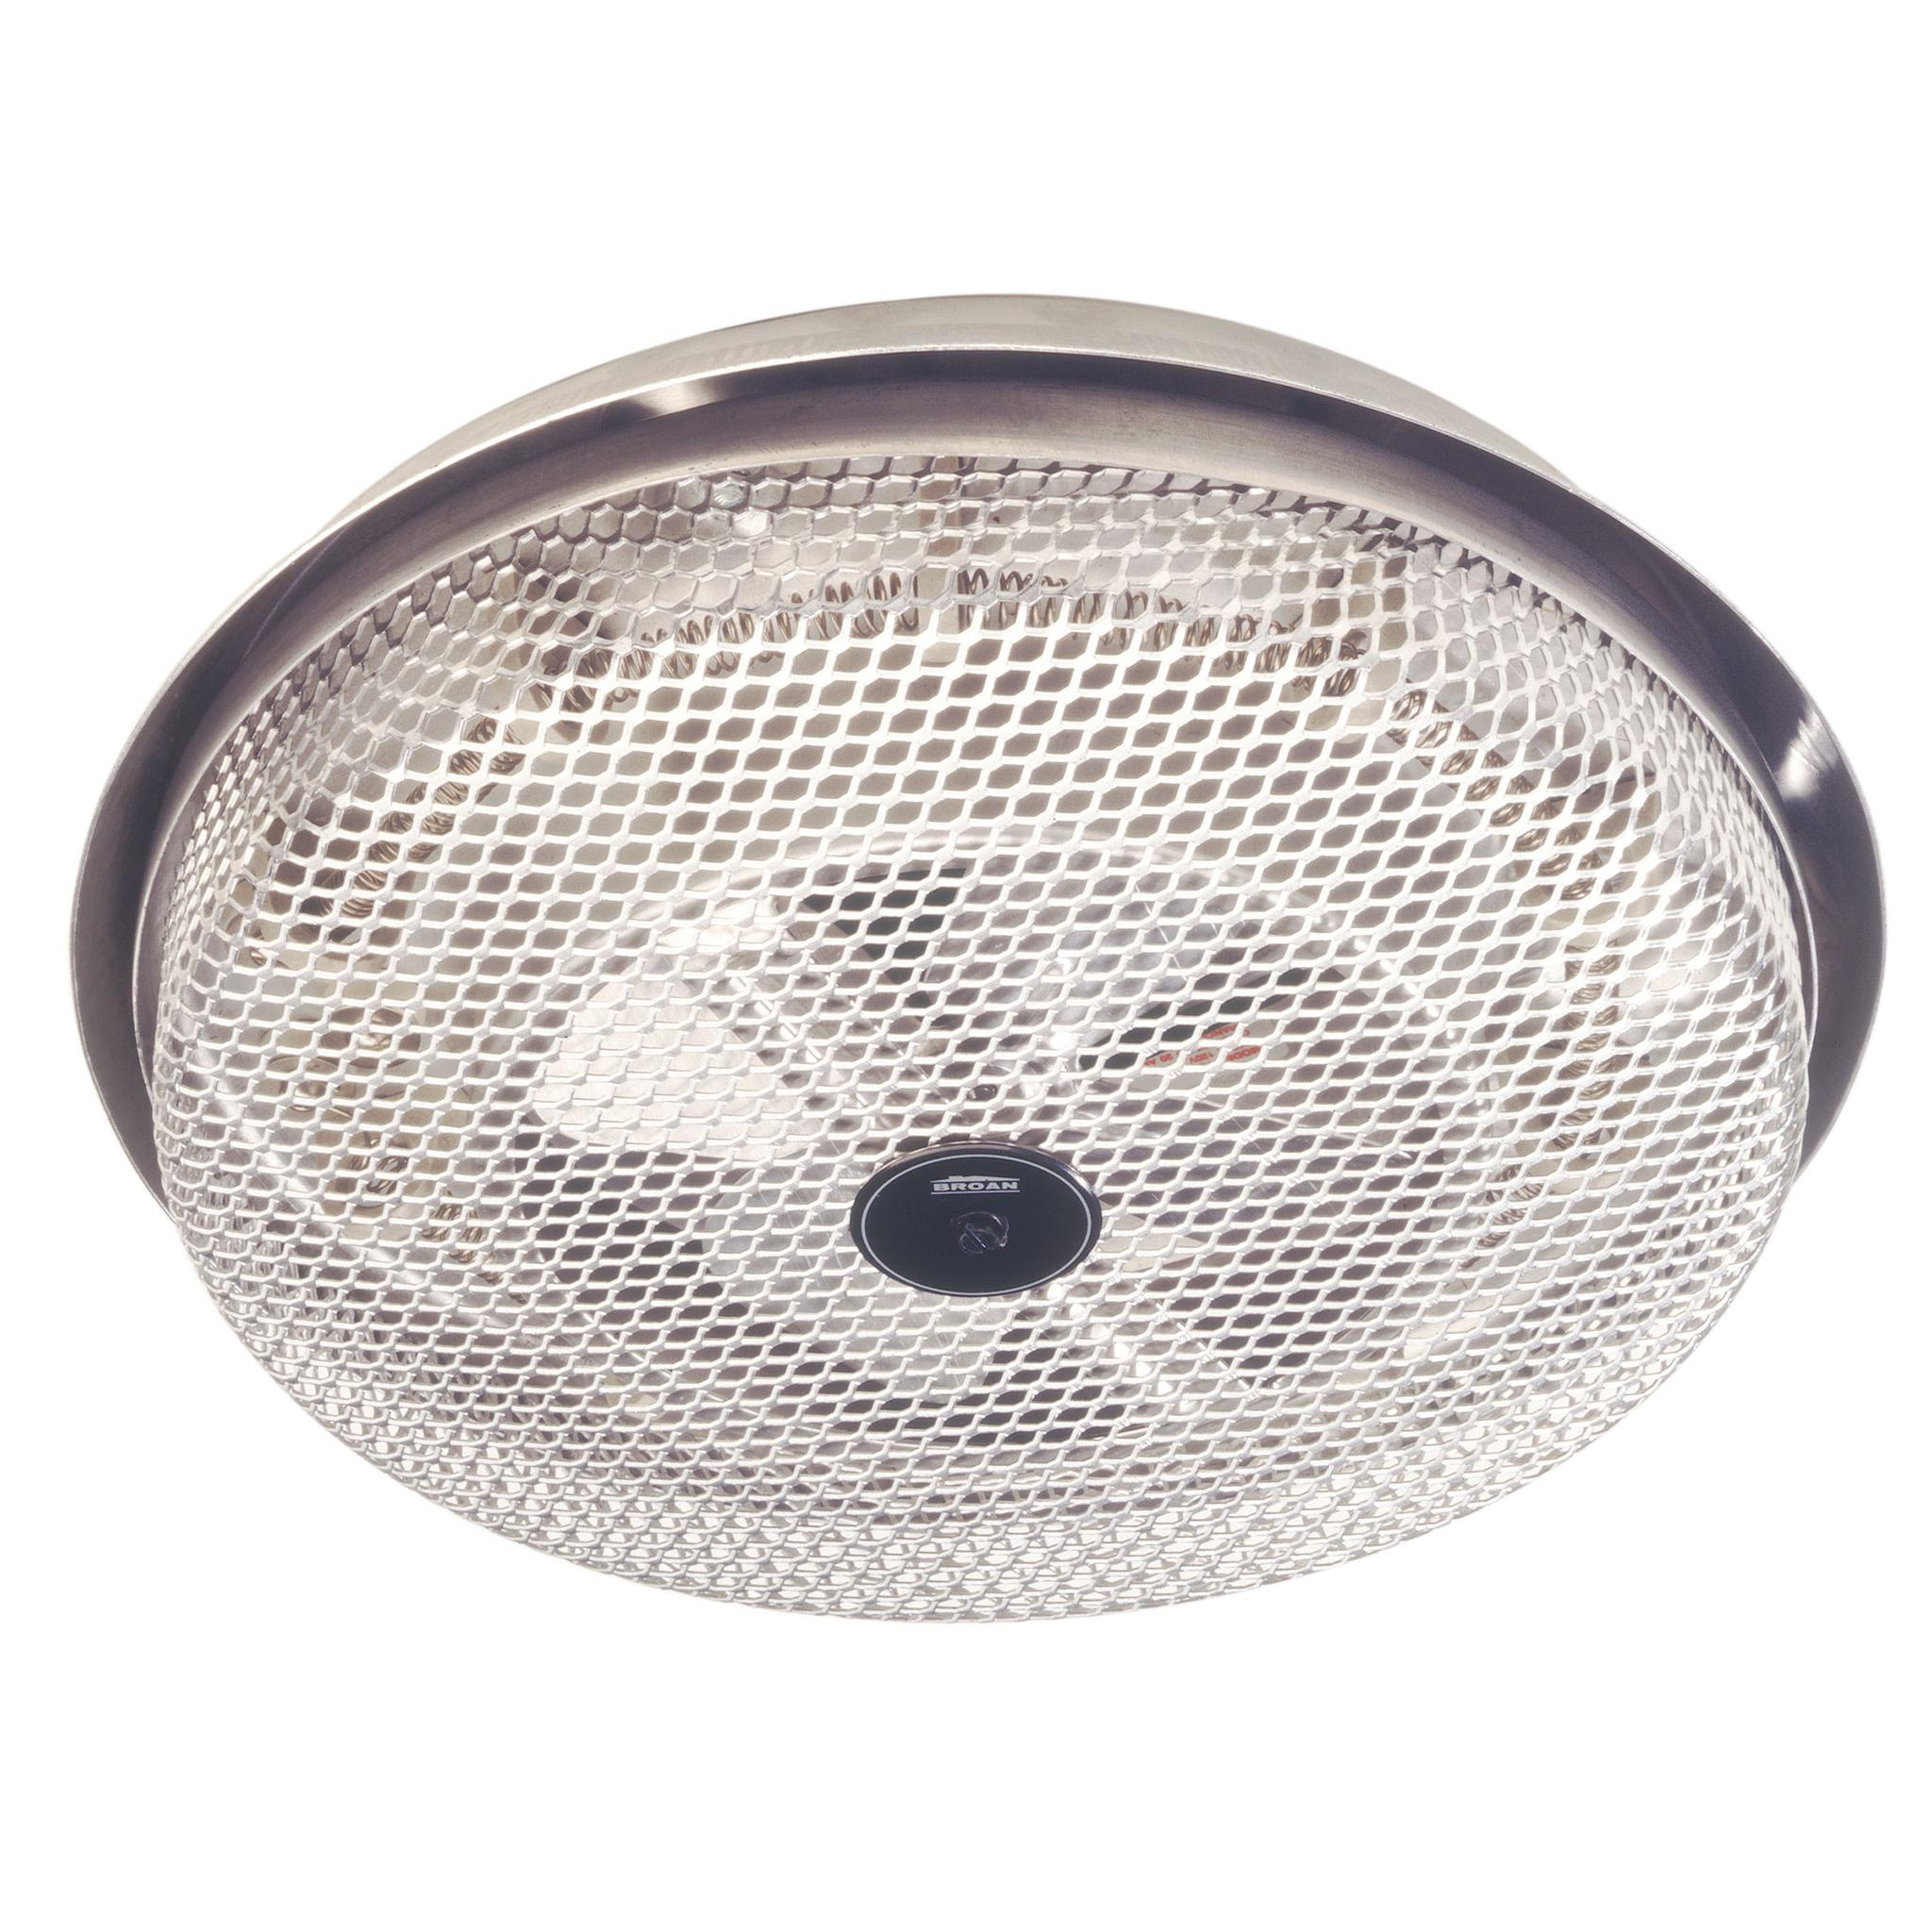 BROAN 157 Low-Profile Fan-Forced Ceiling Heater  sc 1 st  Amazon.com & Broan Model 157 Low-Profile Solid Wire Element Ceiling Heater ...